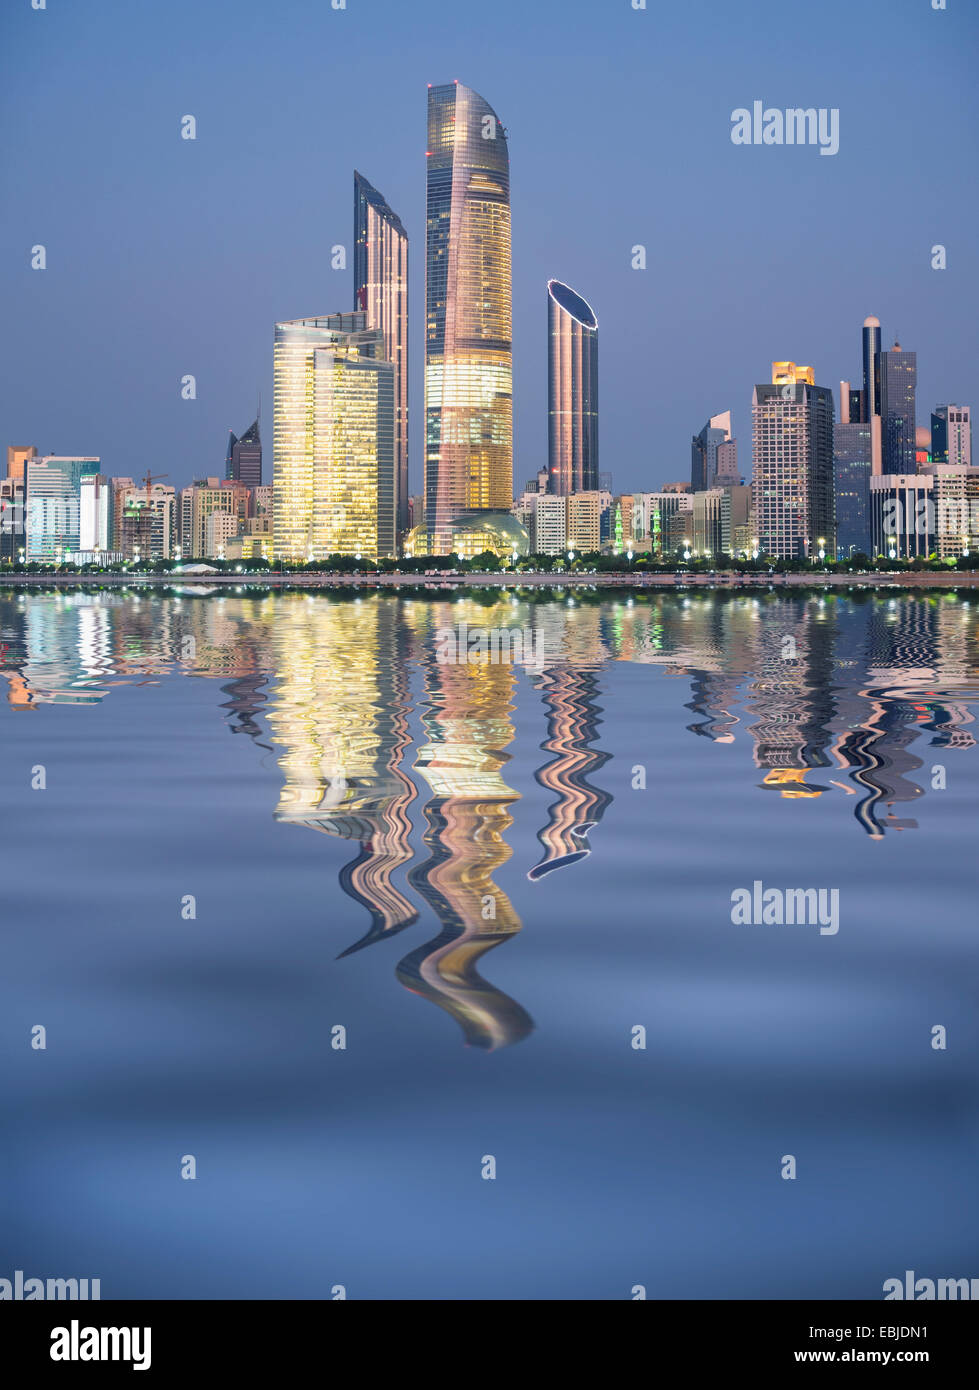 Skyline and reflection of modern buildings along Corniche waterfront in Abu Dhabi United Arab Emirates - Stock Image